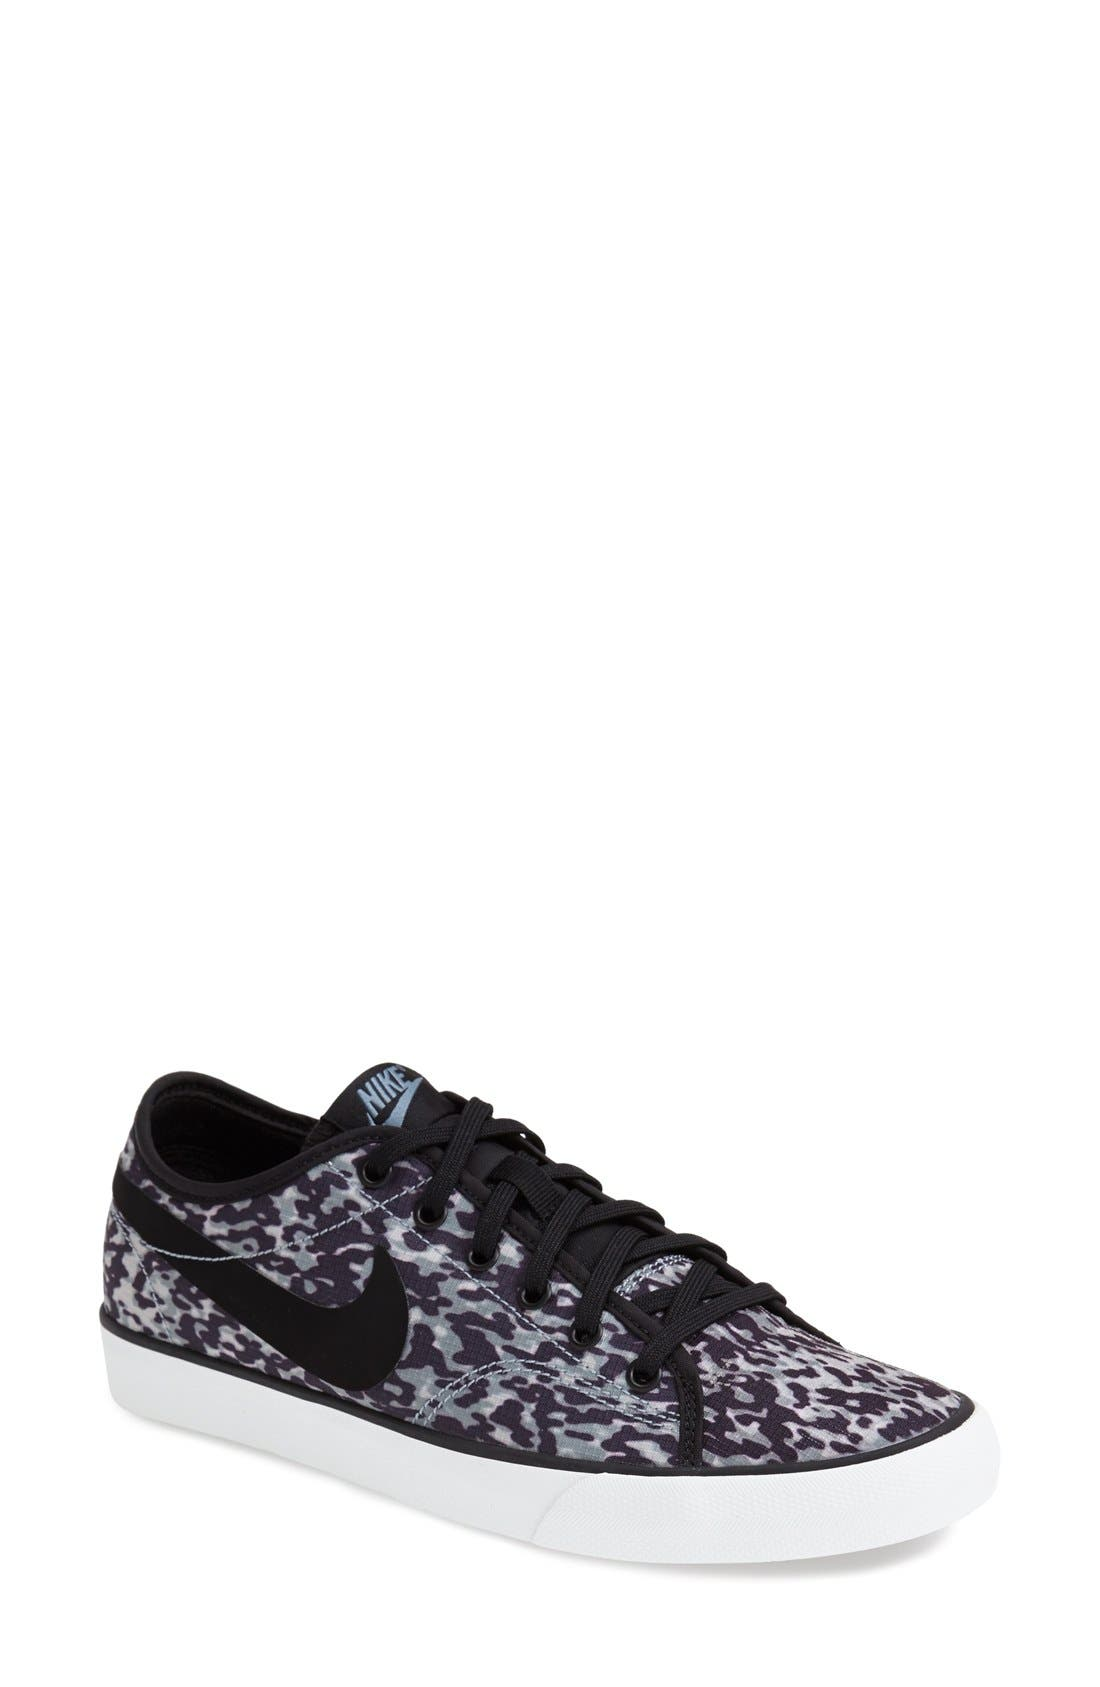 Alternate Image 1 Selected - Nike 'Primo - Court' Printed Canvas Sneaker (Women)